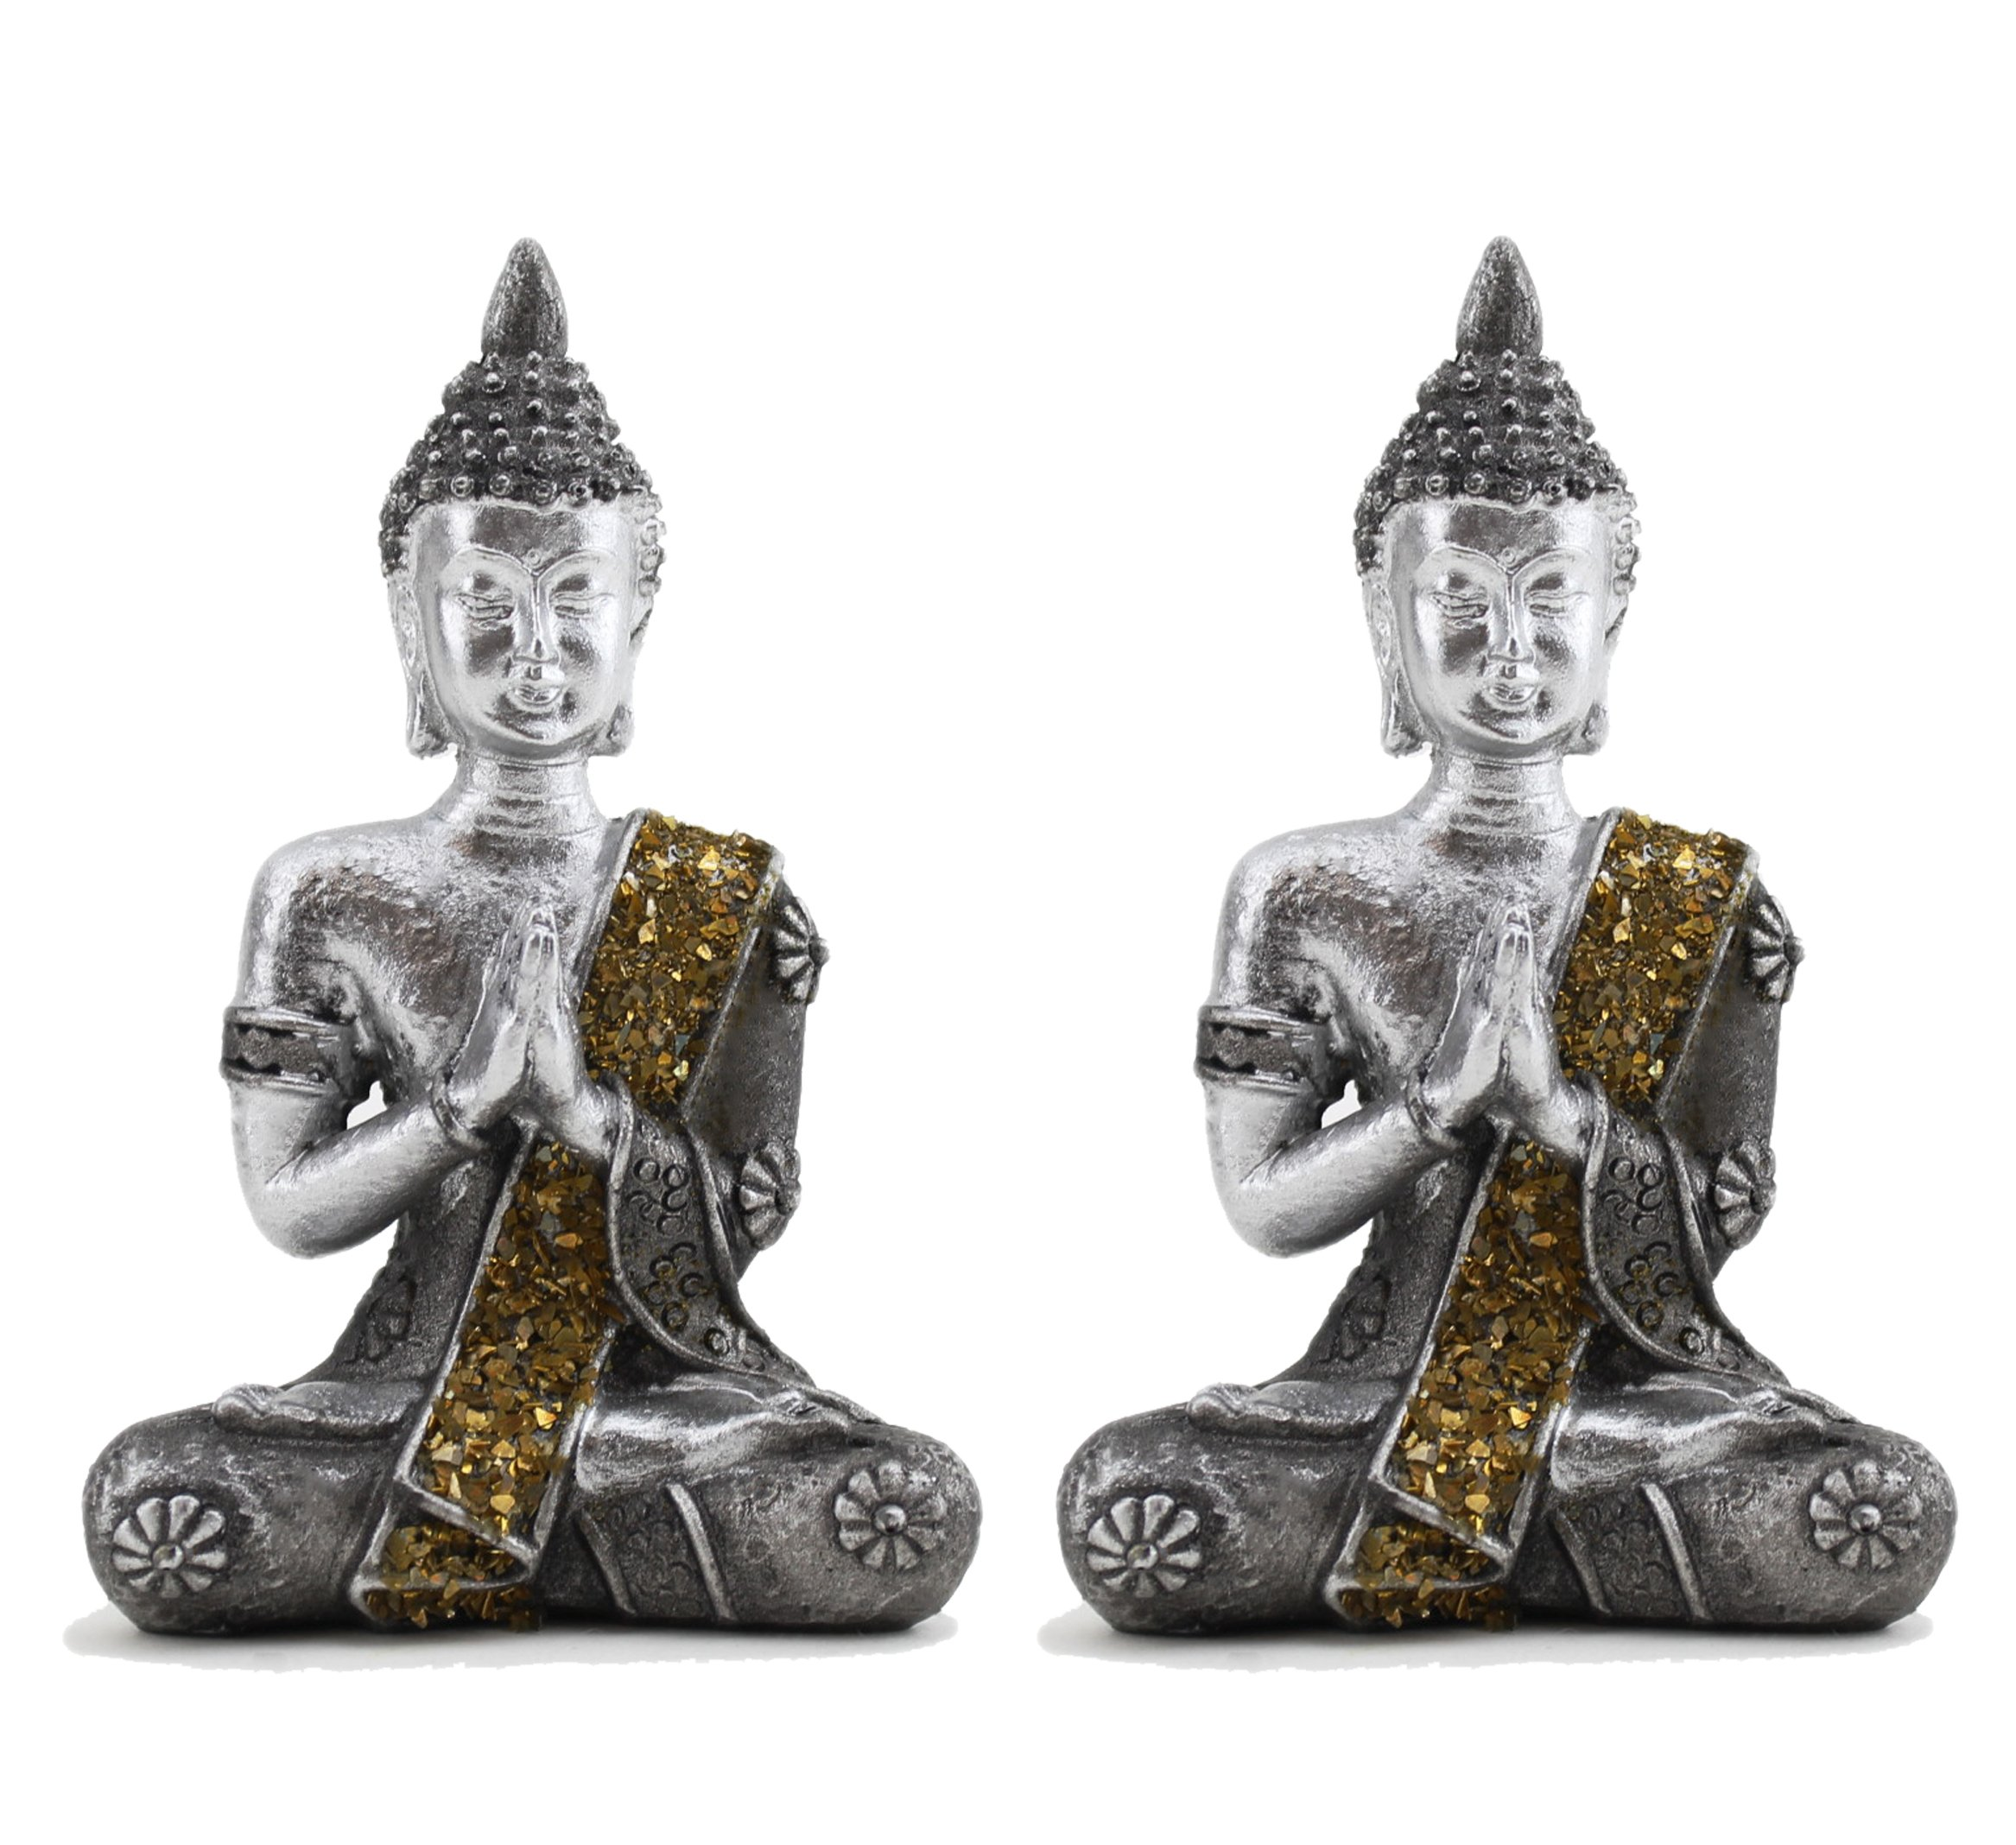 Pair of Small Feng Shui 4'' Tall Thai Praying Meditating Silver Buddha Statue Figurine Feng Shui (2G16608) ~ We Pay Your Sales Tax by We pay your sales tax